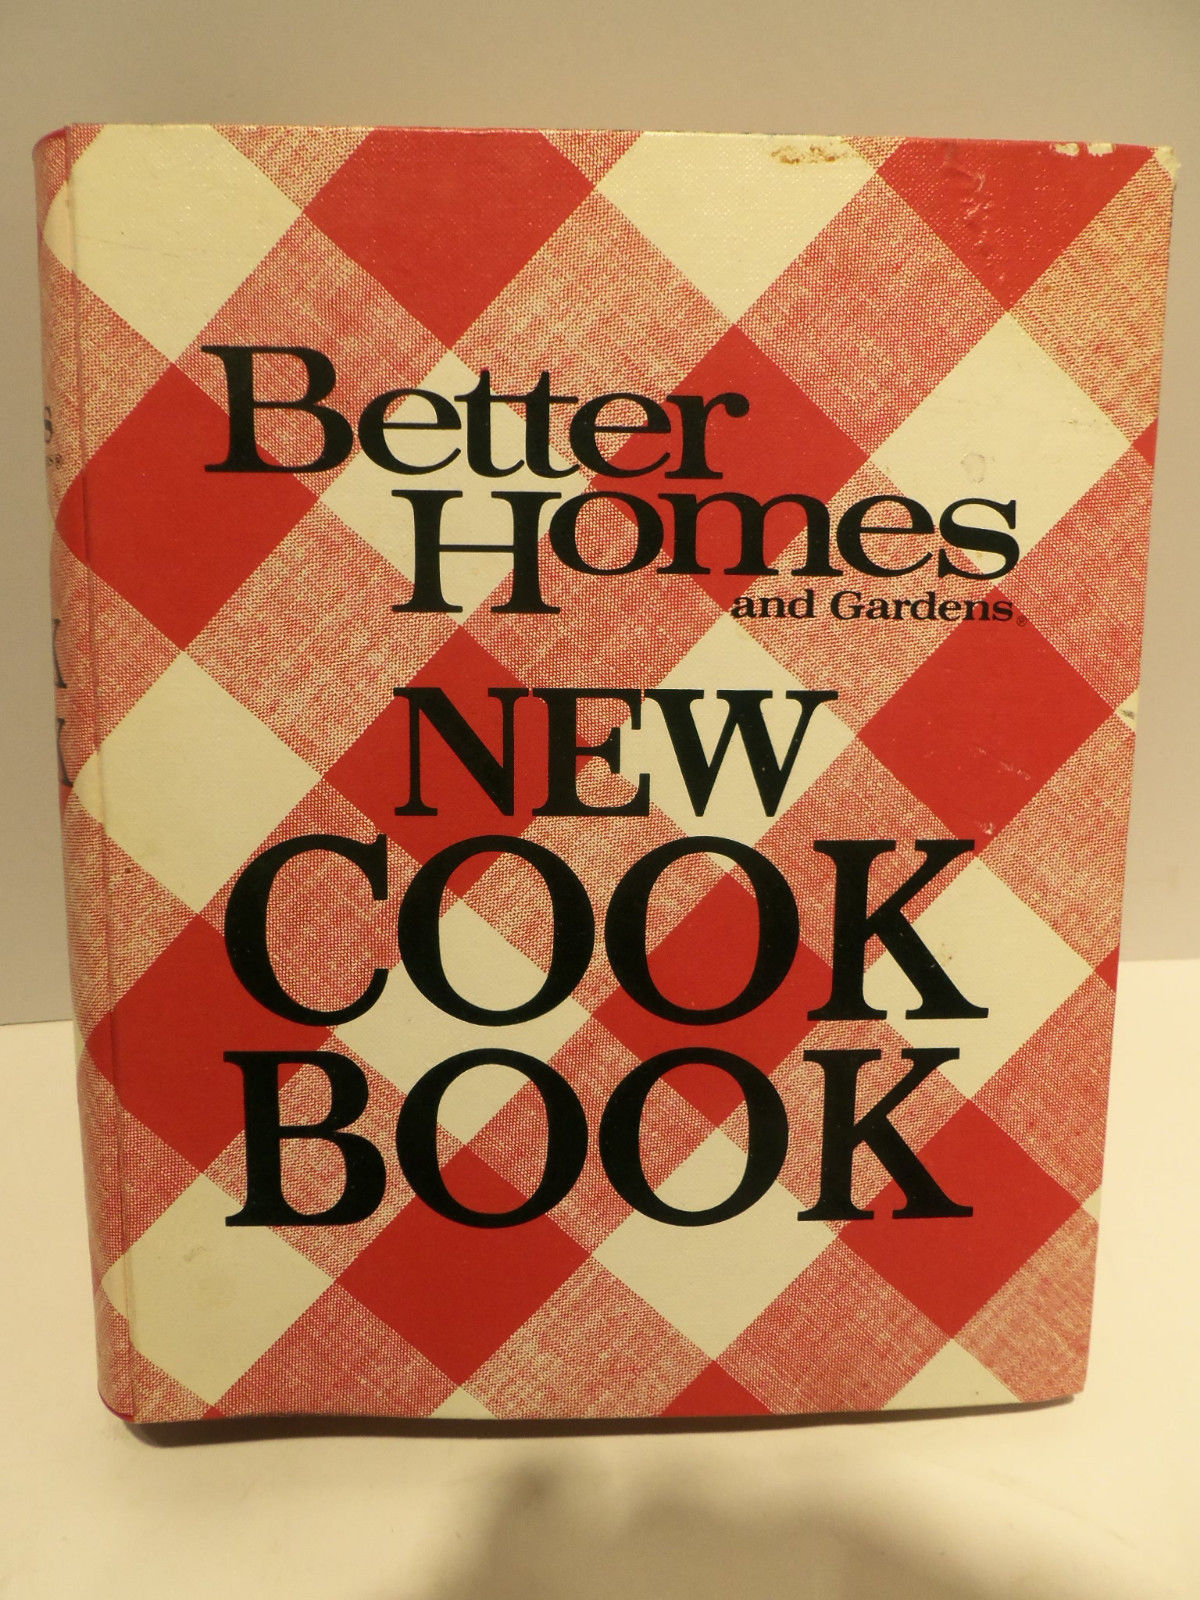 Vintage 1976 better homes and gardens new cookbook 5 - Vintage better homes and gardens cookbook ...